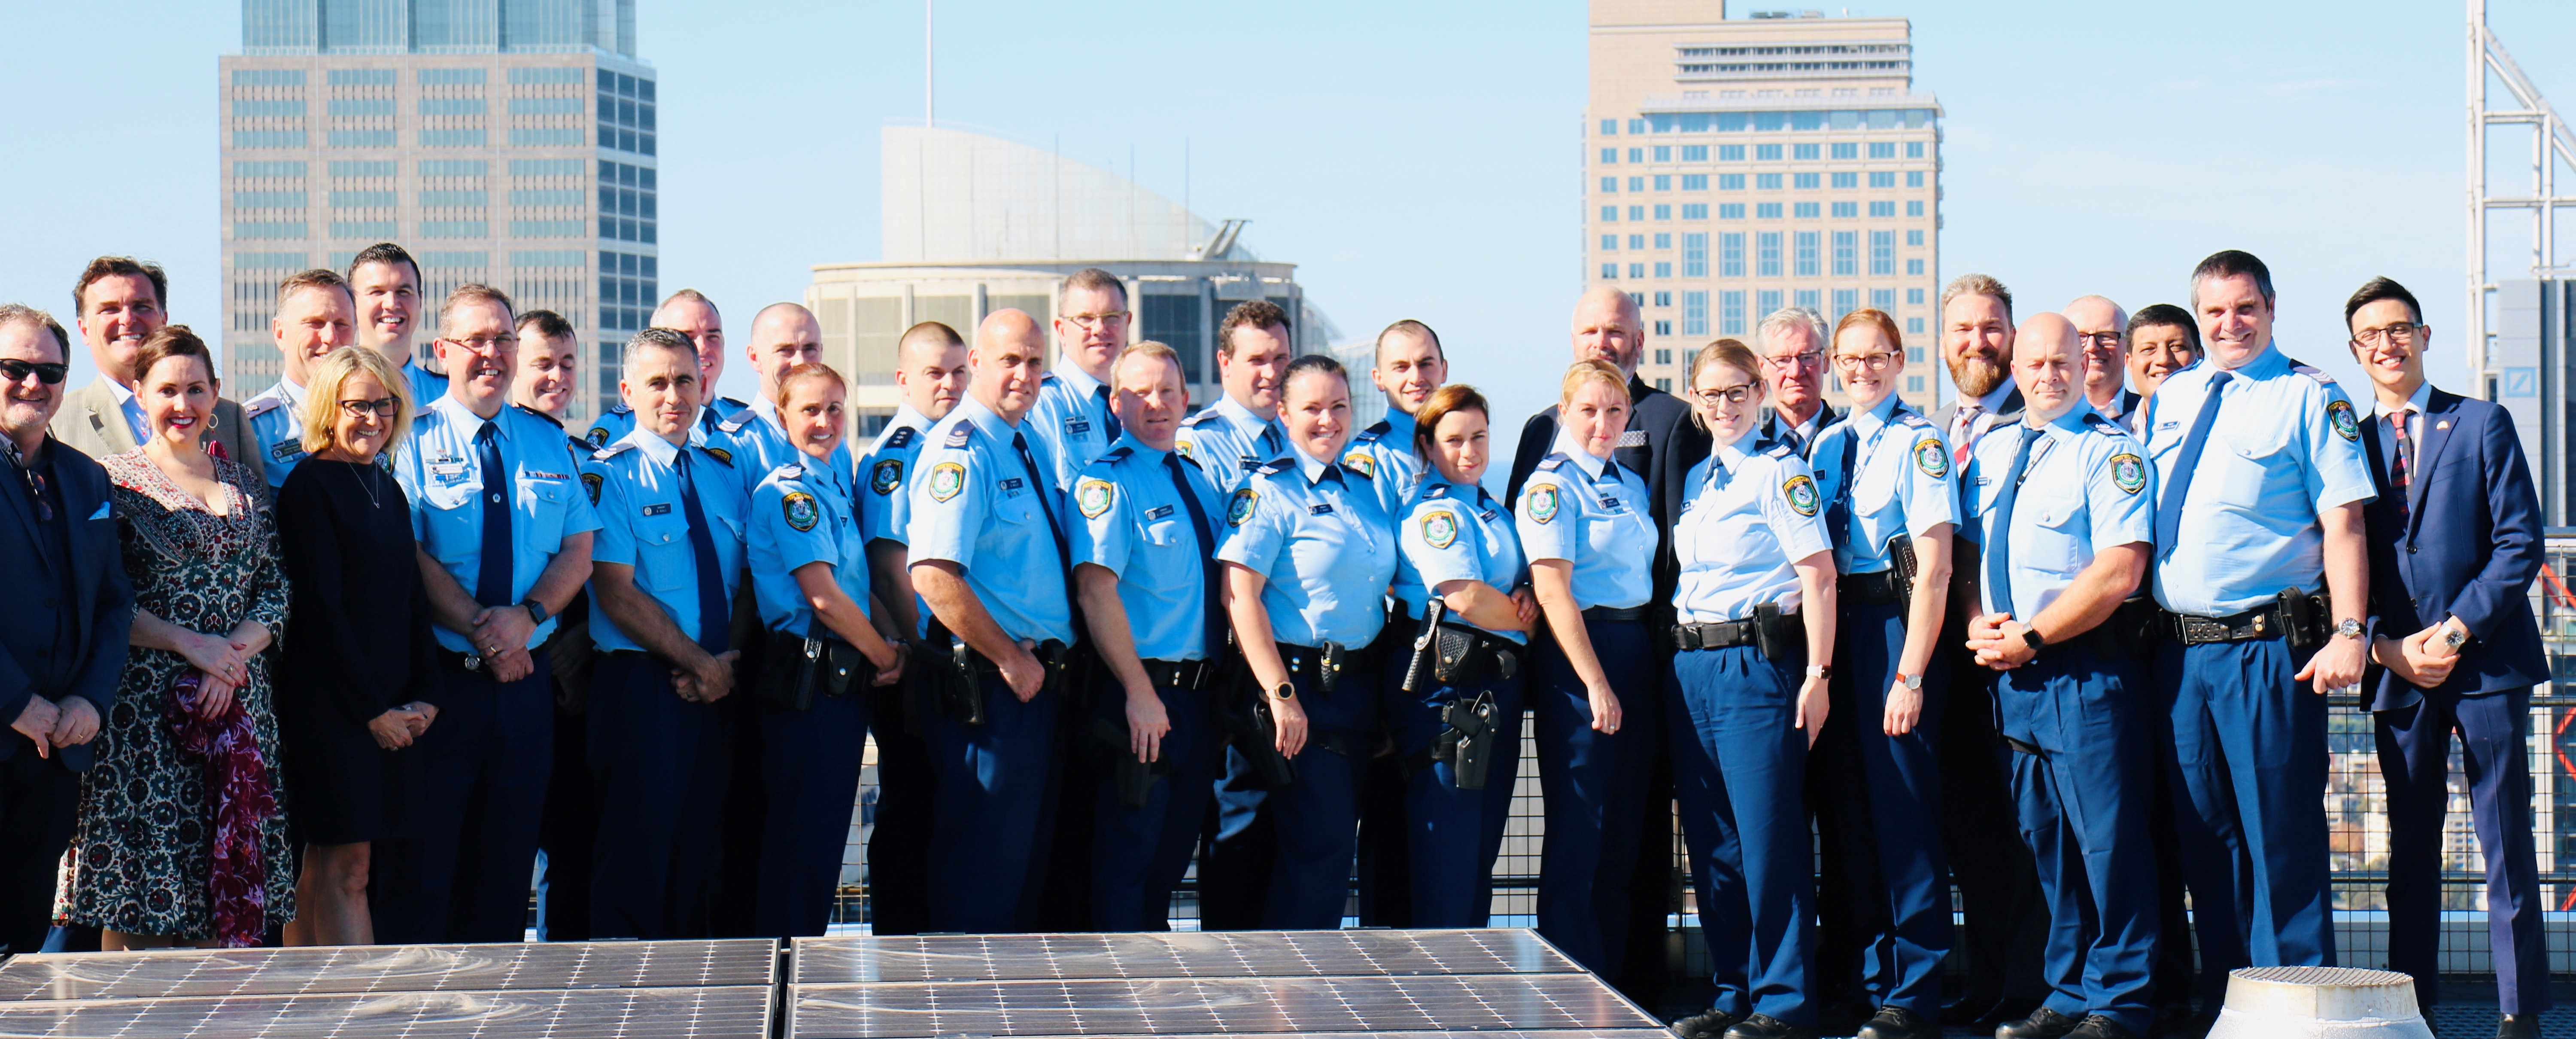 Police Roof-1